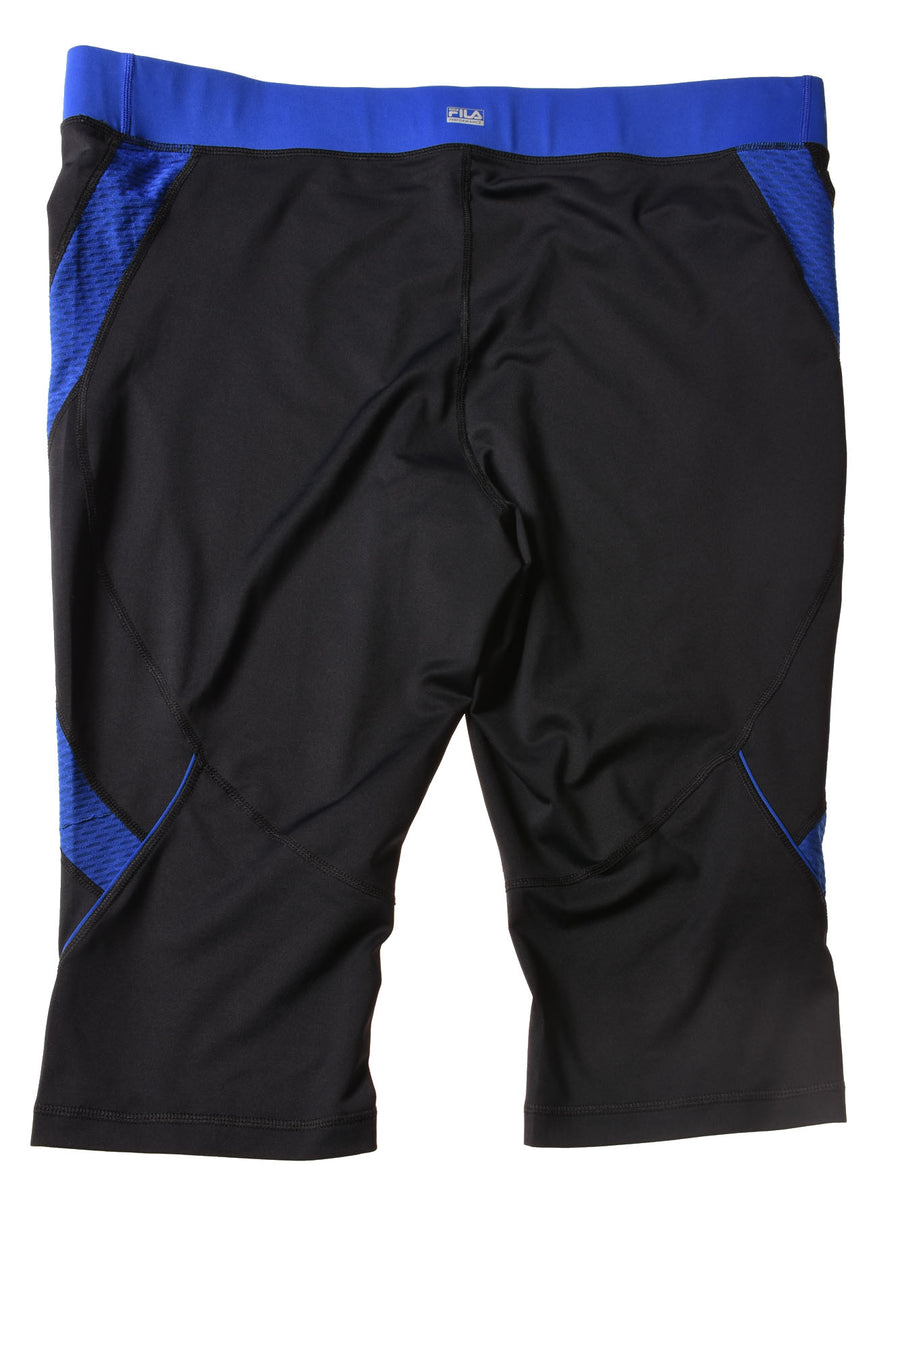 Women's Leggings By Fila Sport